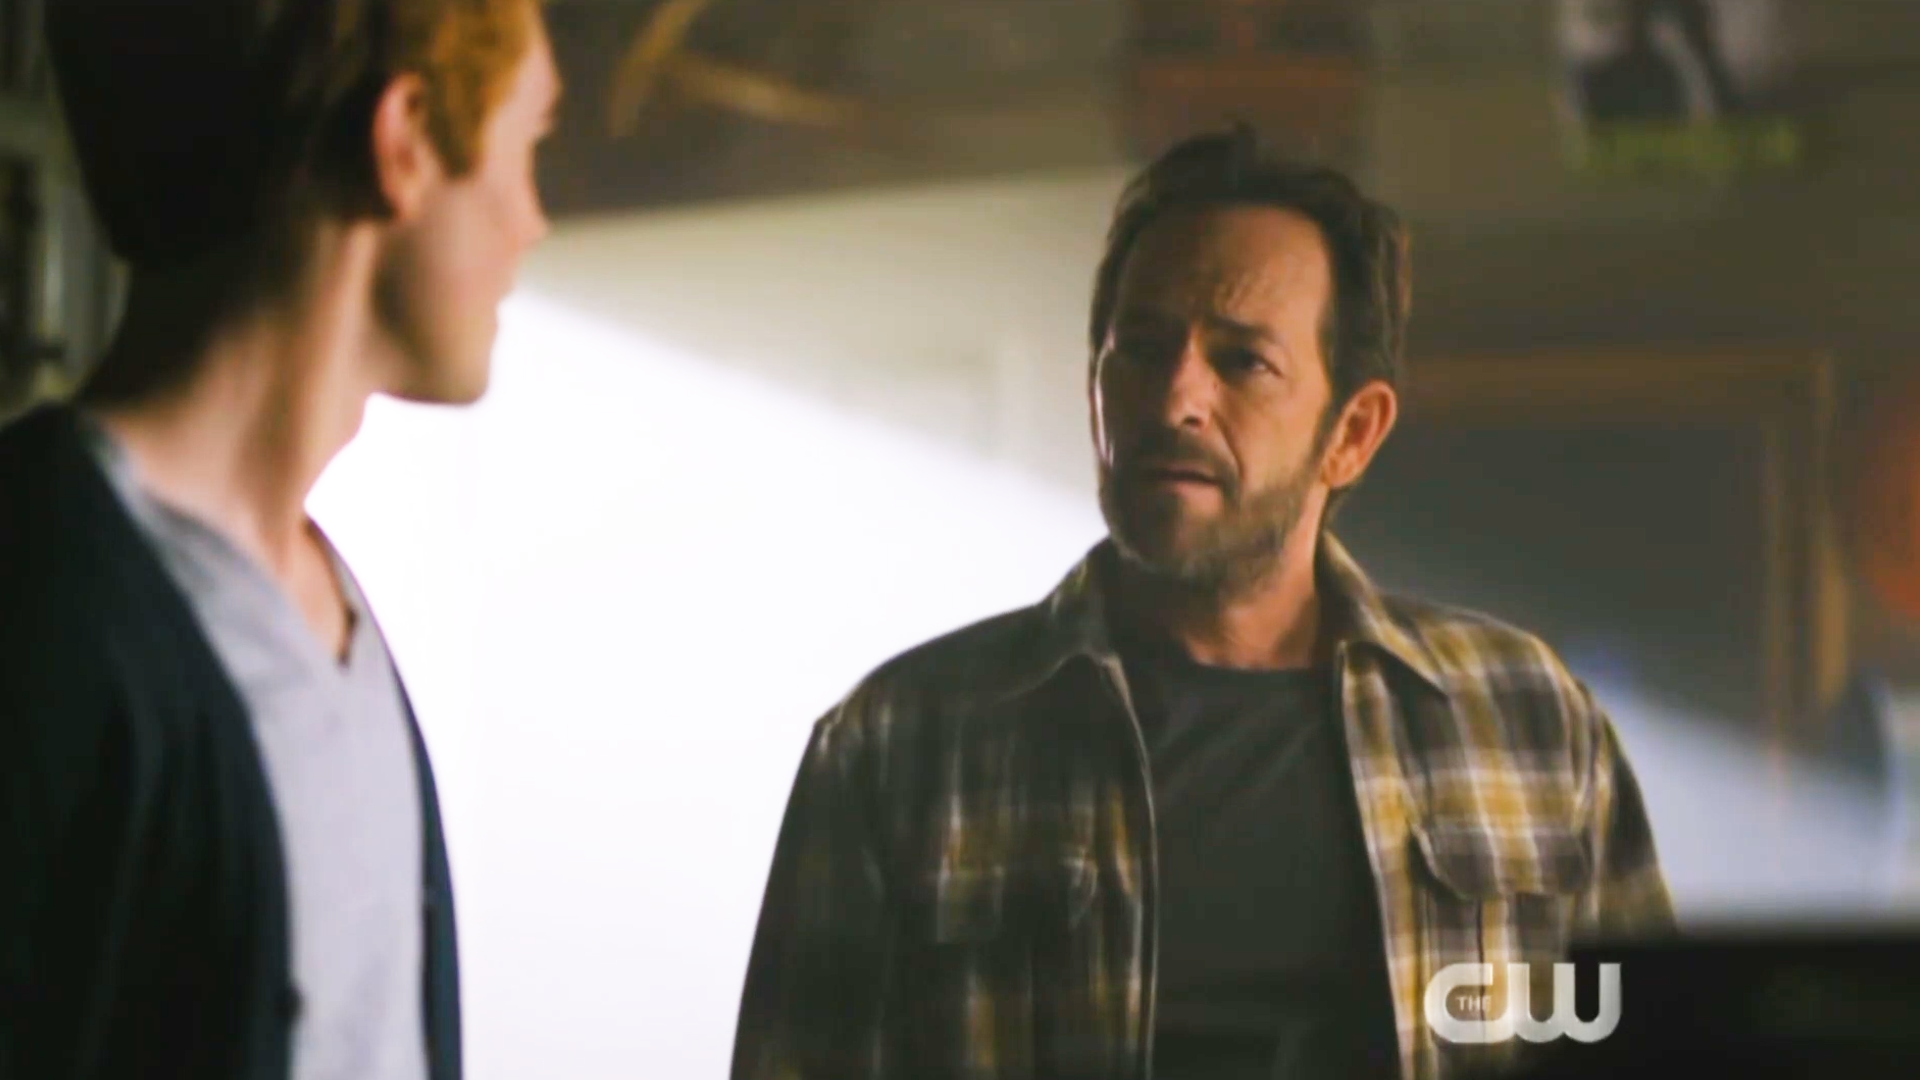 Luke Perry honored in touching 'Riverdale' tribute featuring Shannen Doherty